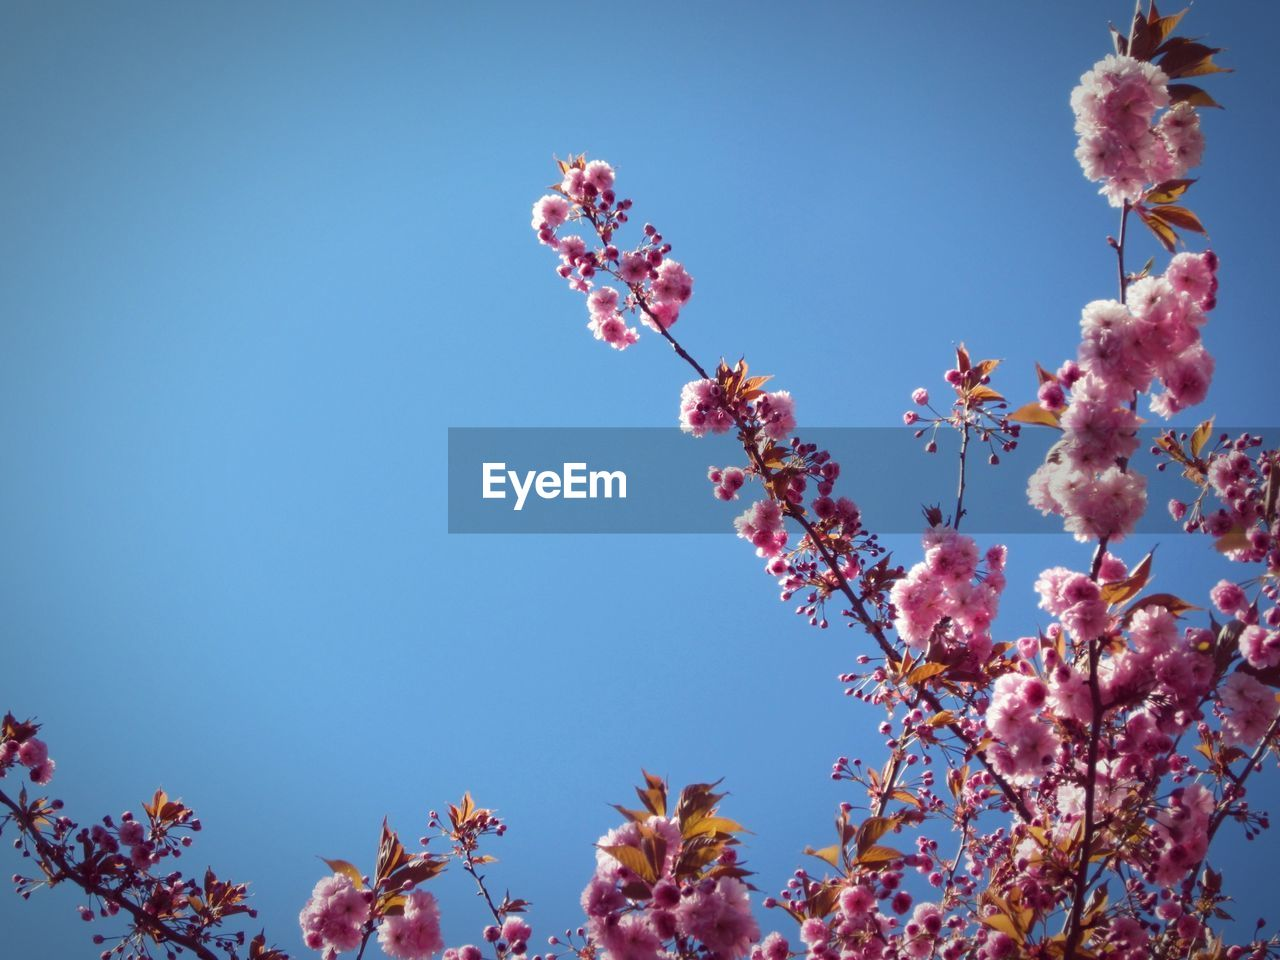 LOW ANGLE VIEW OF PINK FLOWERS AGAINST CLEAR BLUE SKY